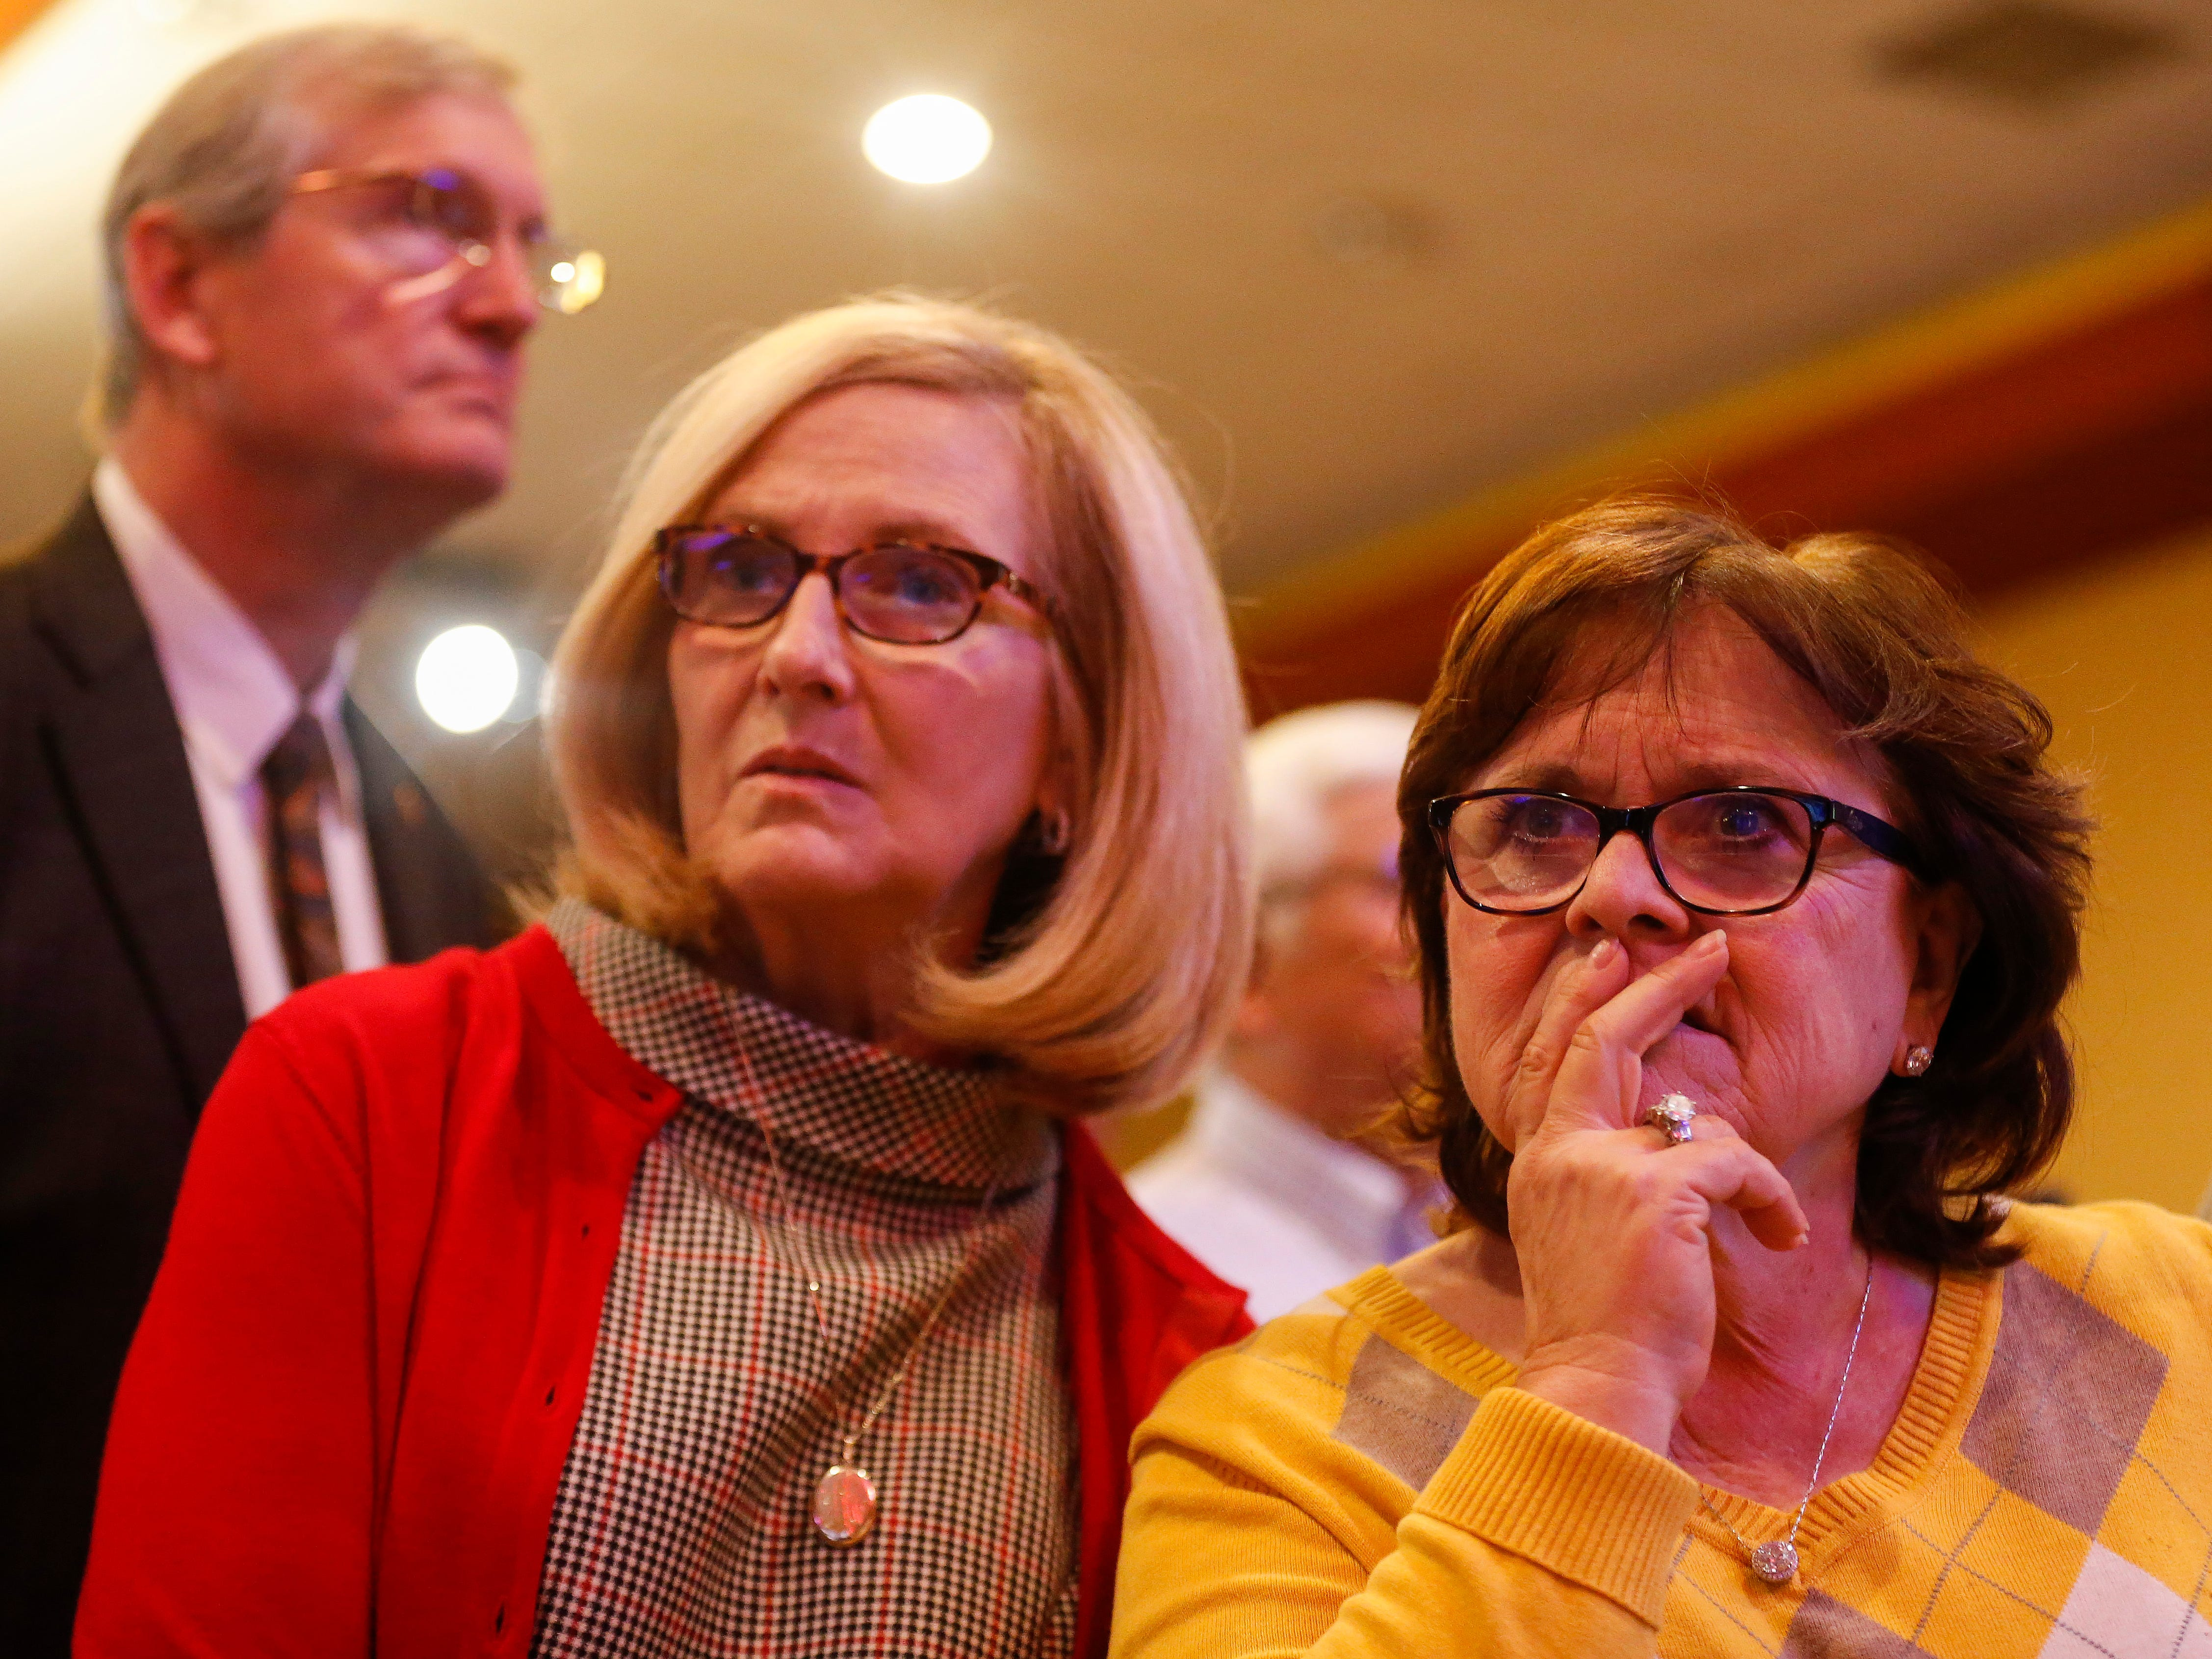 Liz Whitener, right, watches intently as results come in during the Greene County Republican's watch party at the University Plaza hotel on Tuesday, Nov. 6, 2018.